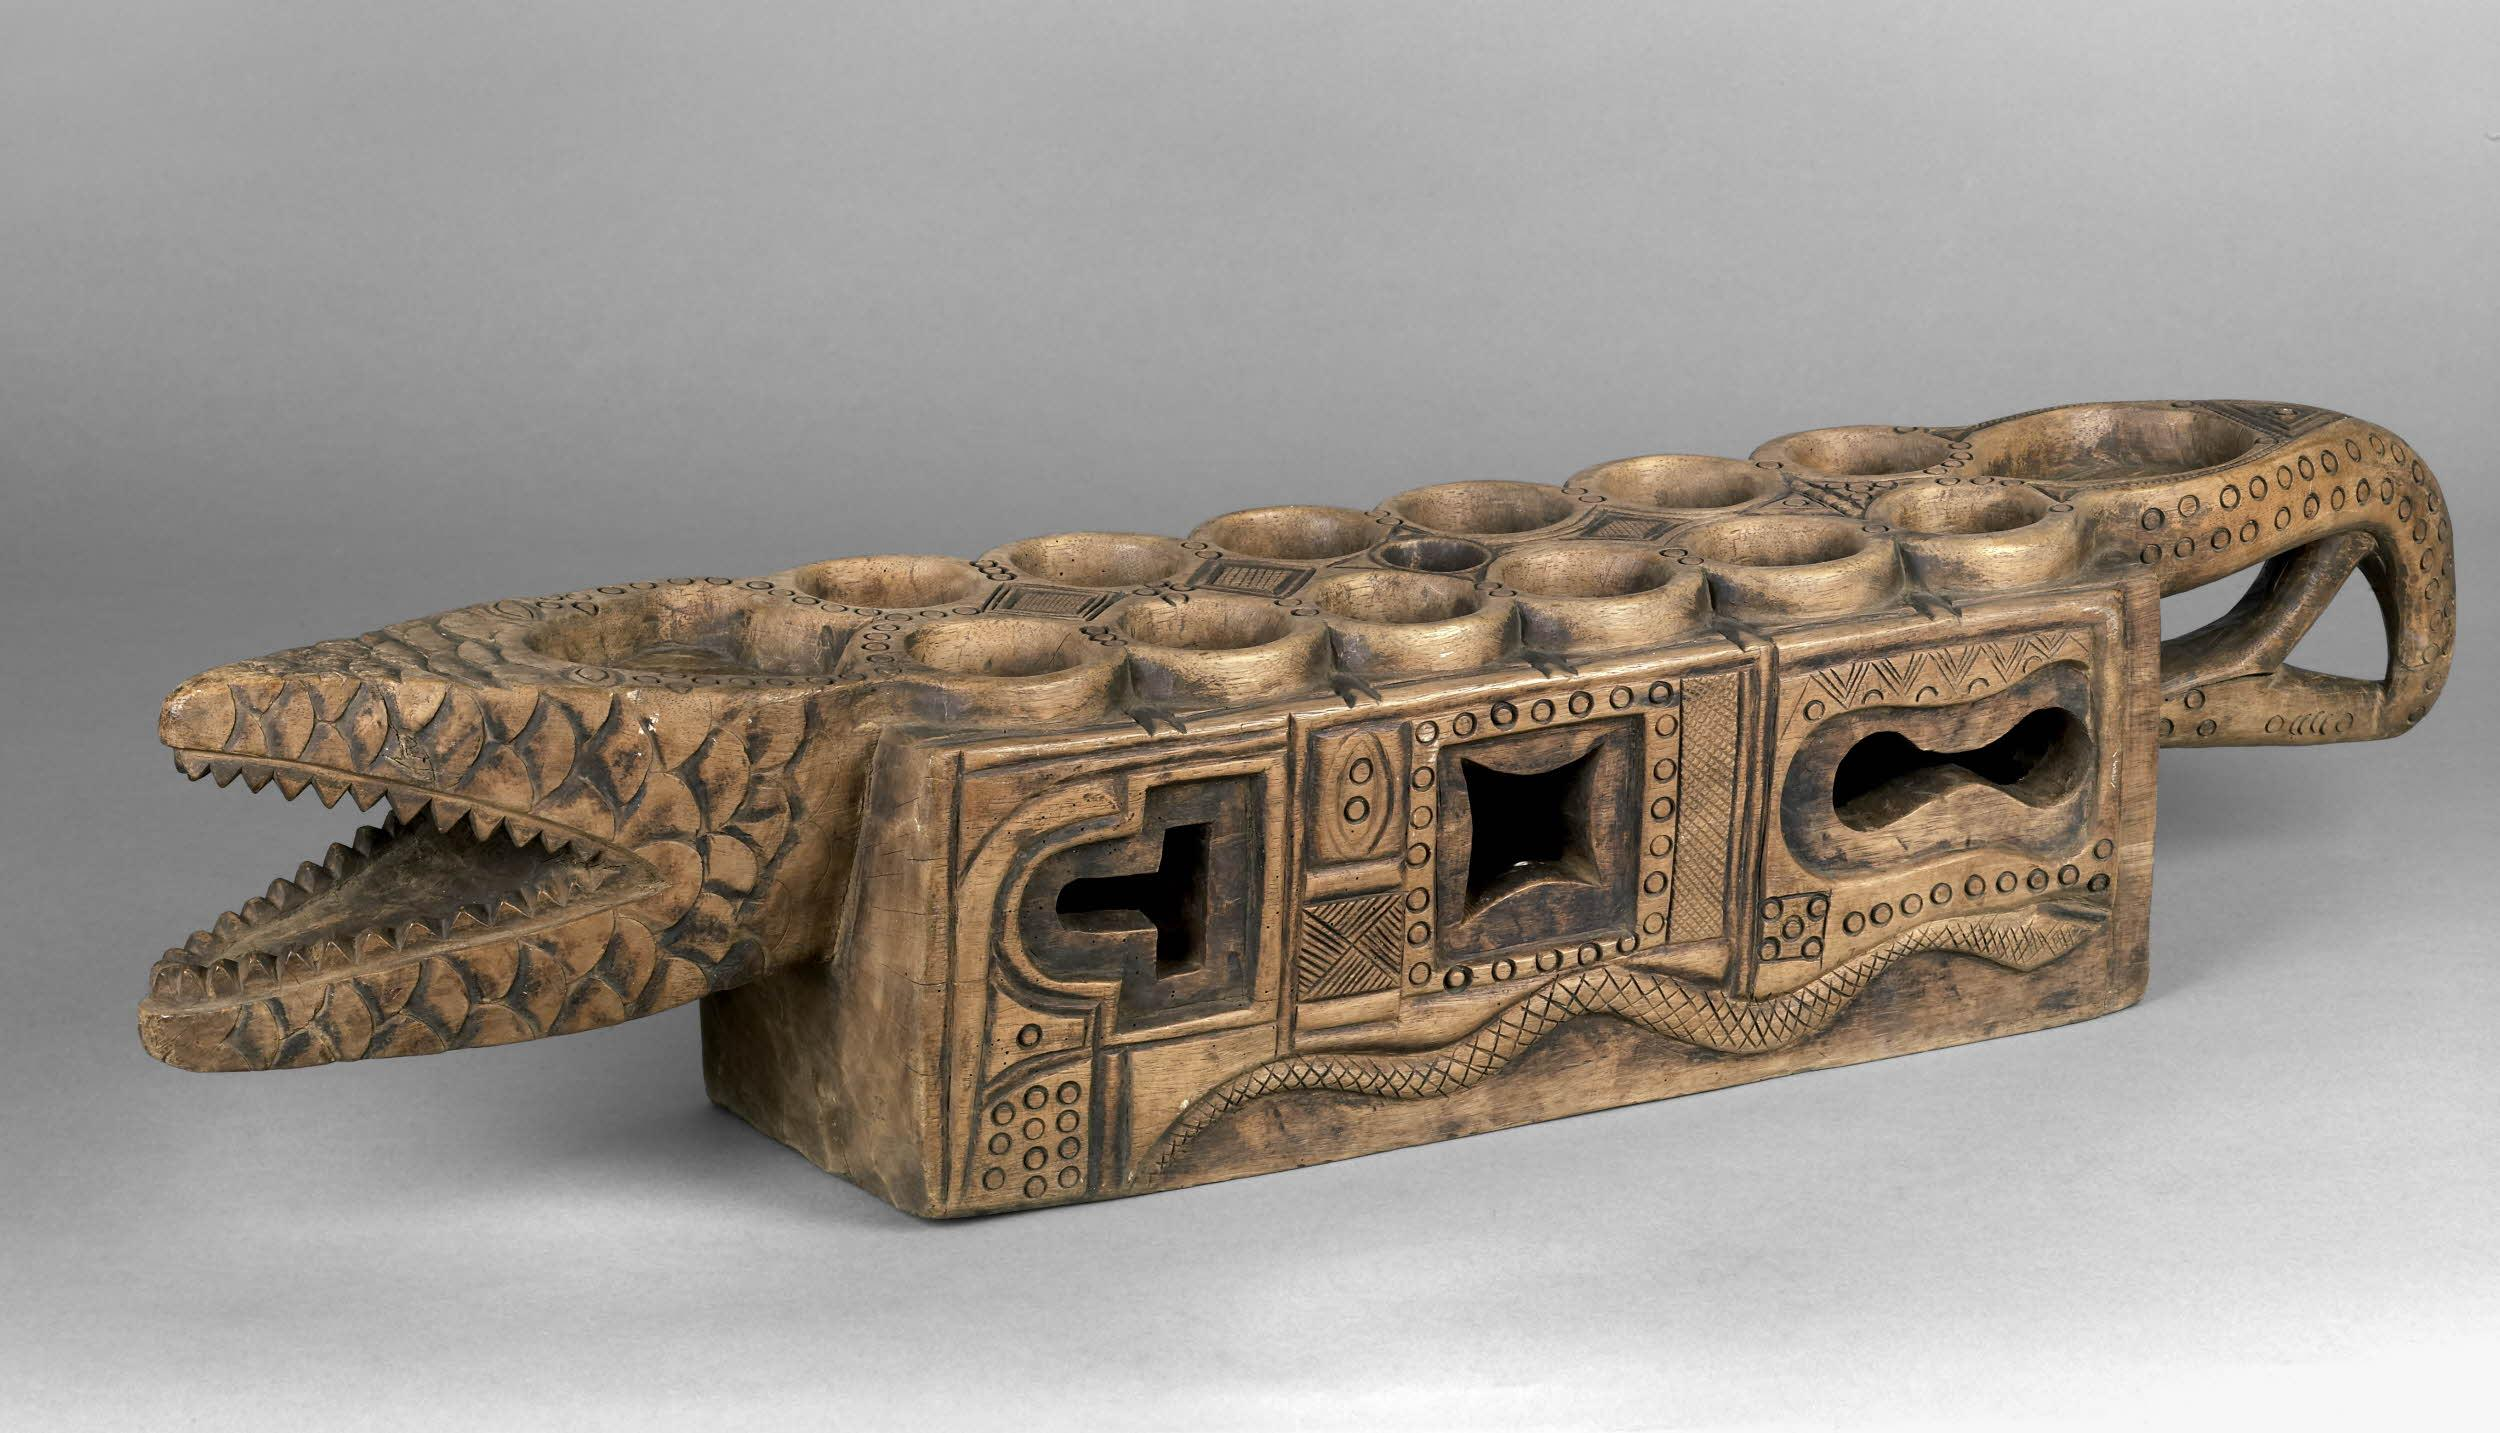 An Ekoi (Nigerian) board made out of wood and tin. Photo by: British Museum.